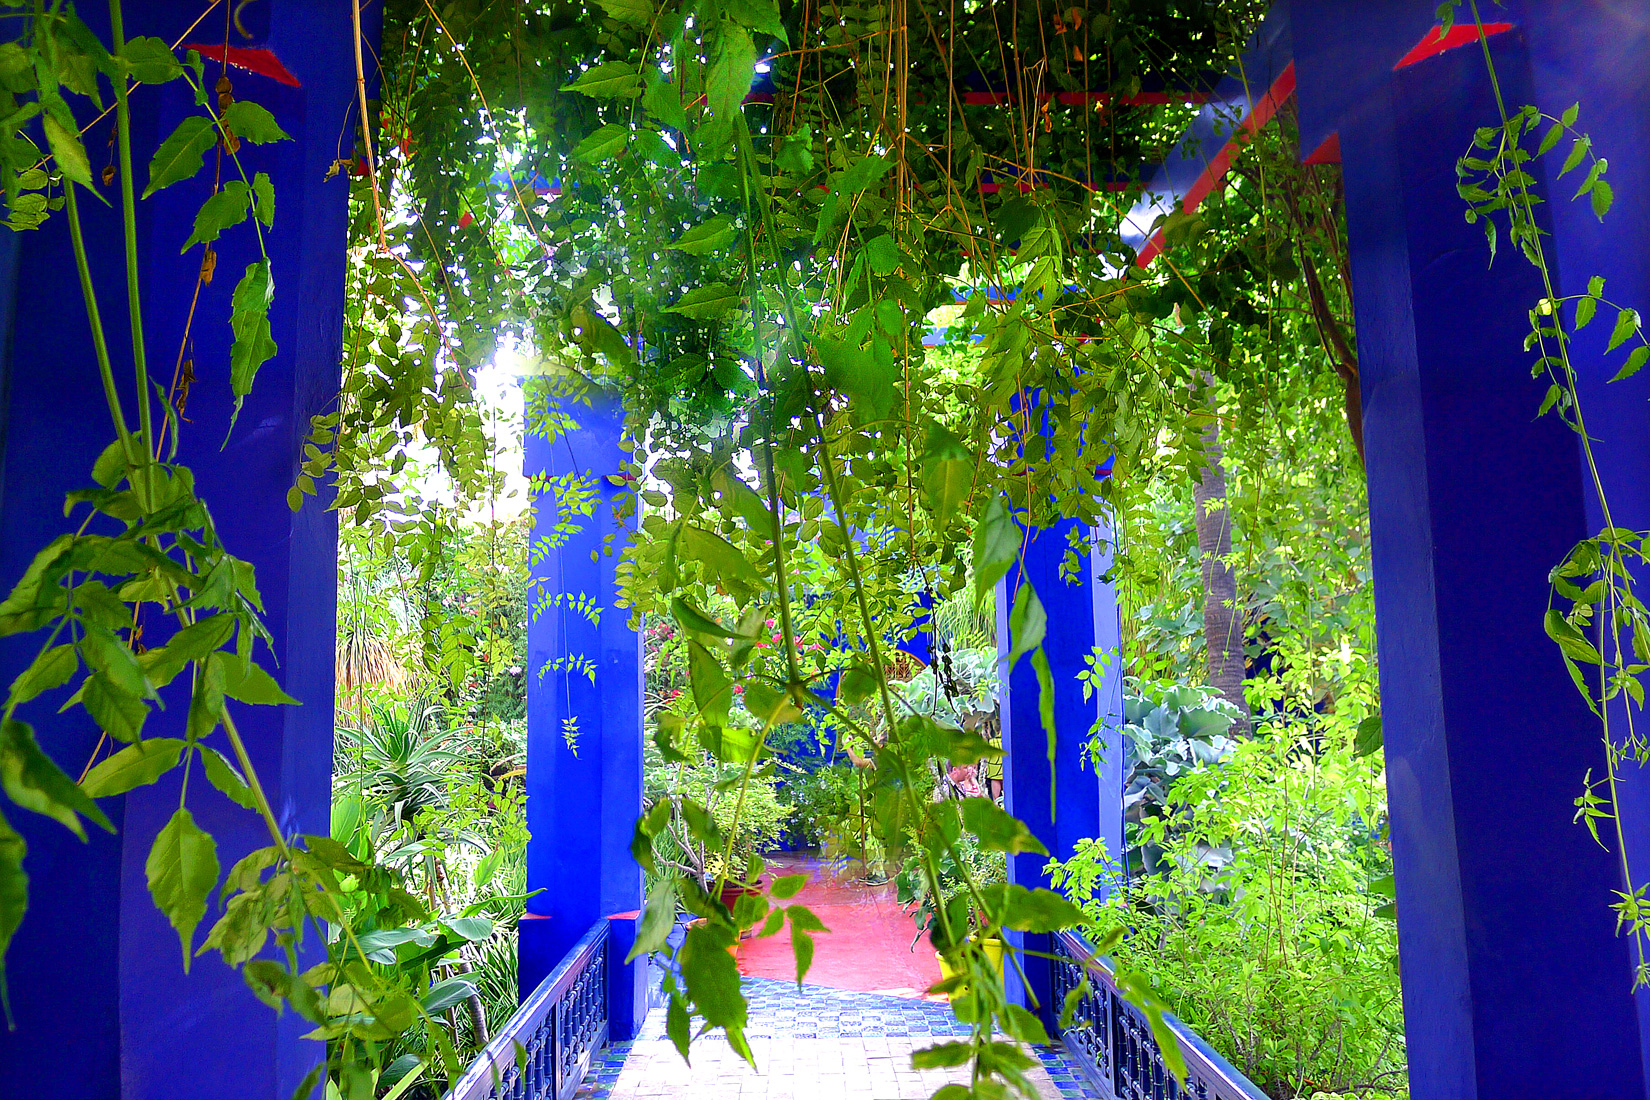 Yves Saint Laurent, Jardin Majorelle, Marrakesh, Morocco